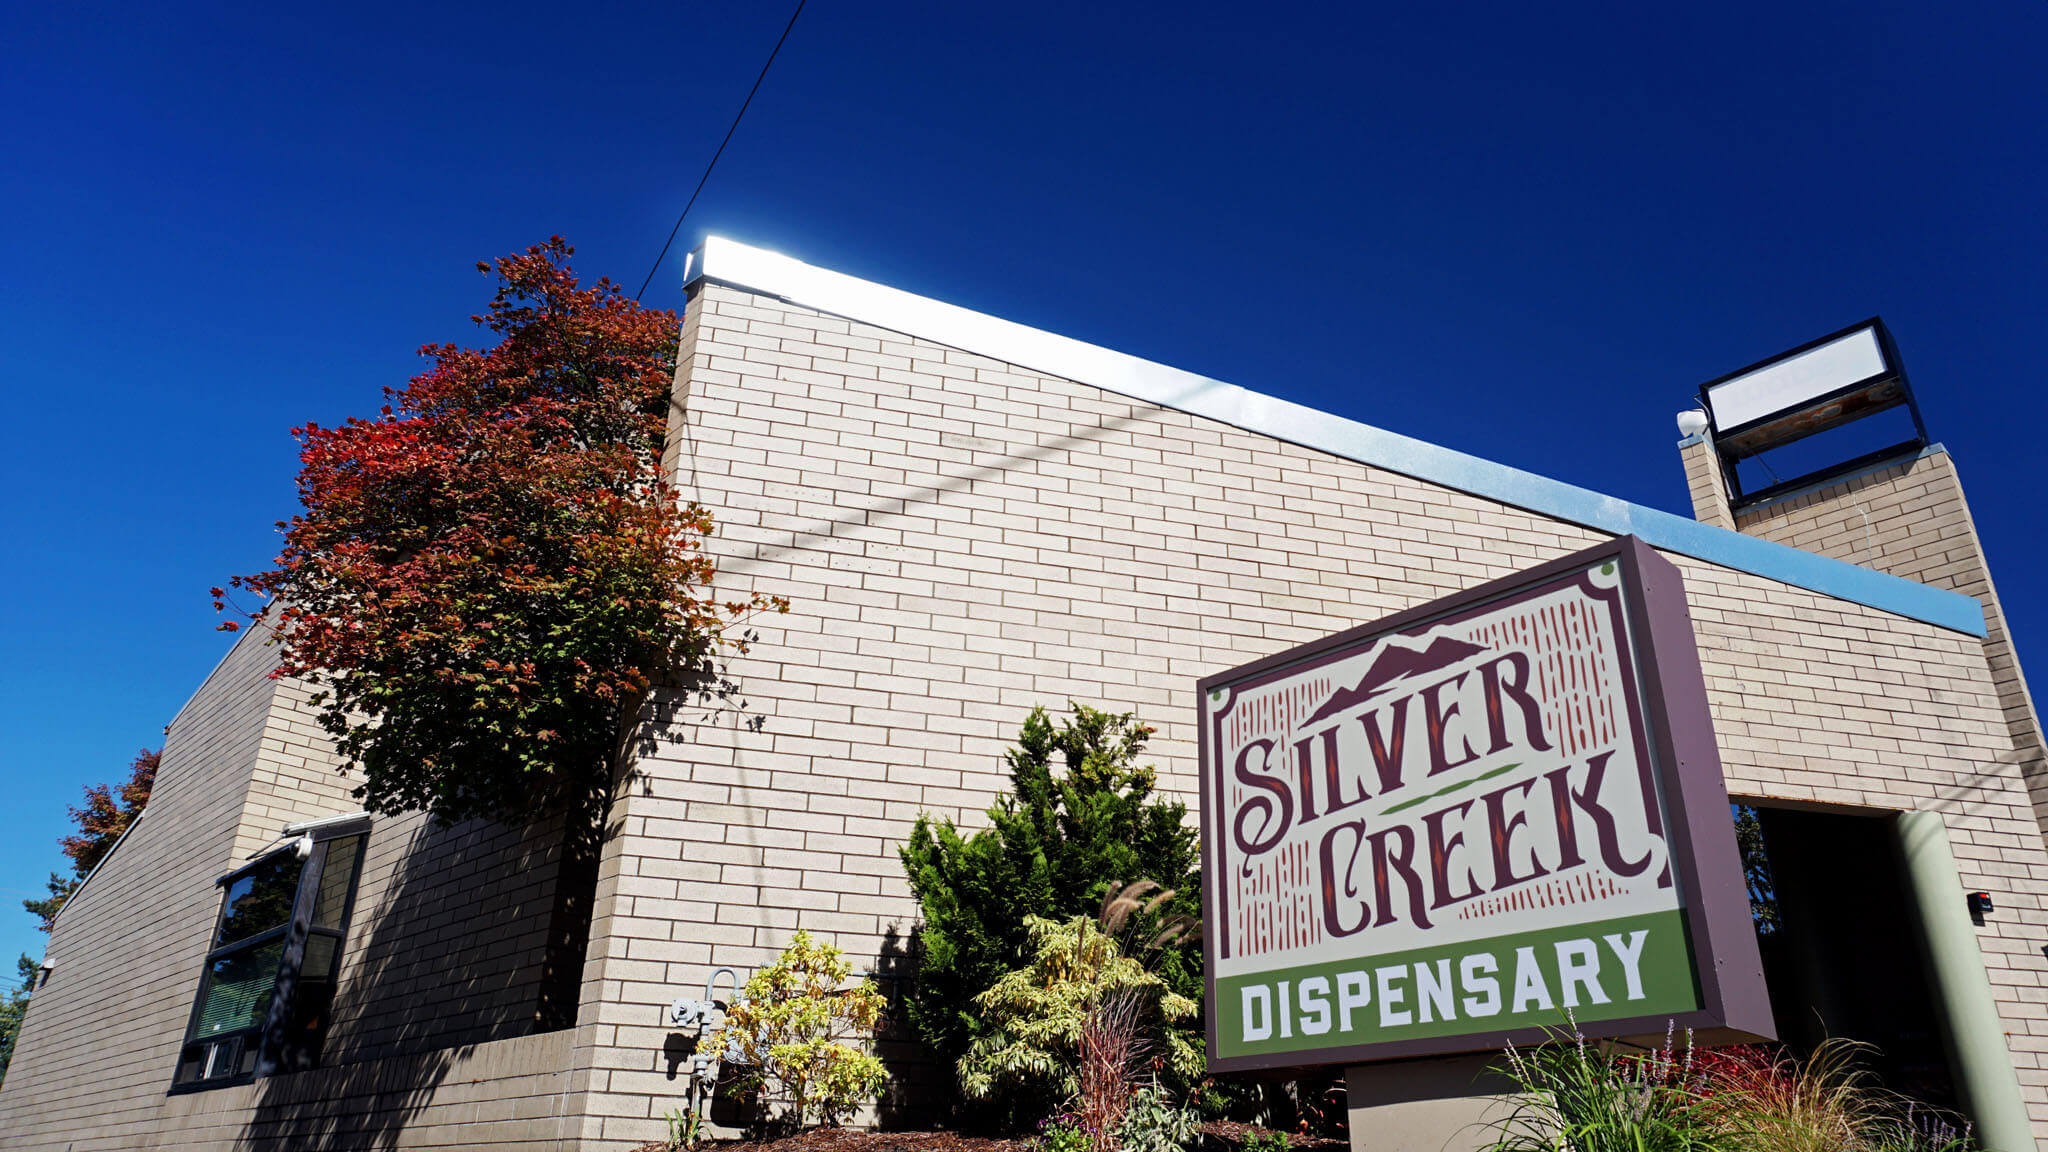 Silver Creek Dispensary